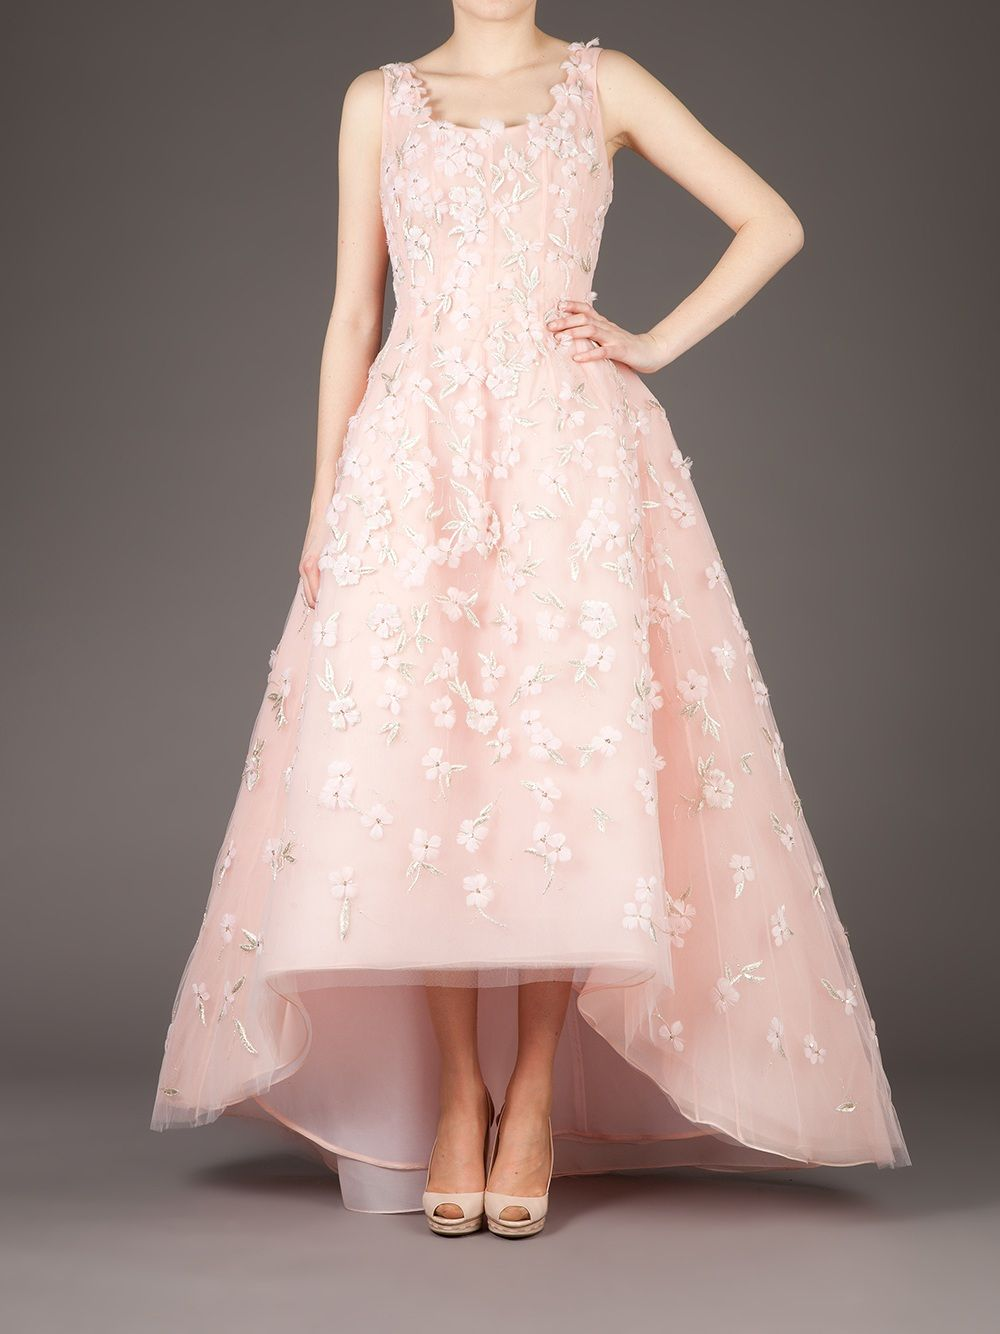 Oscar De La Renta Floral Embellished Evening Gown In Pink Floral